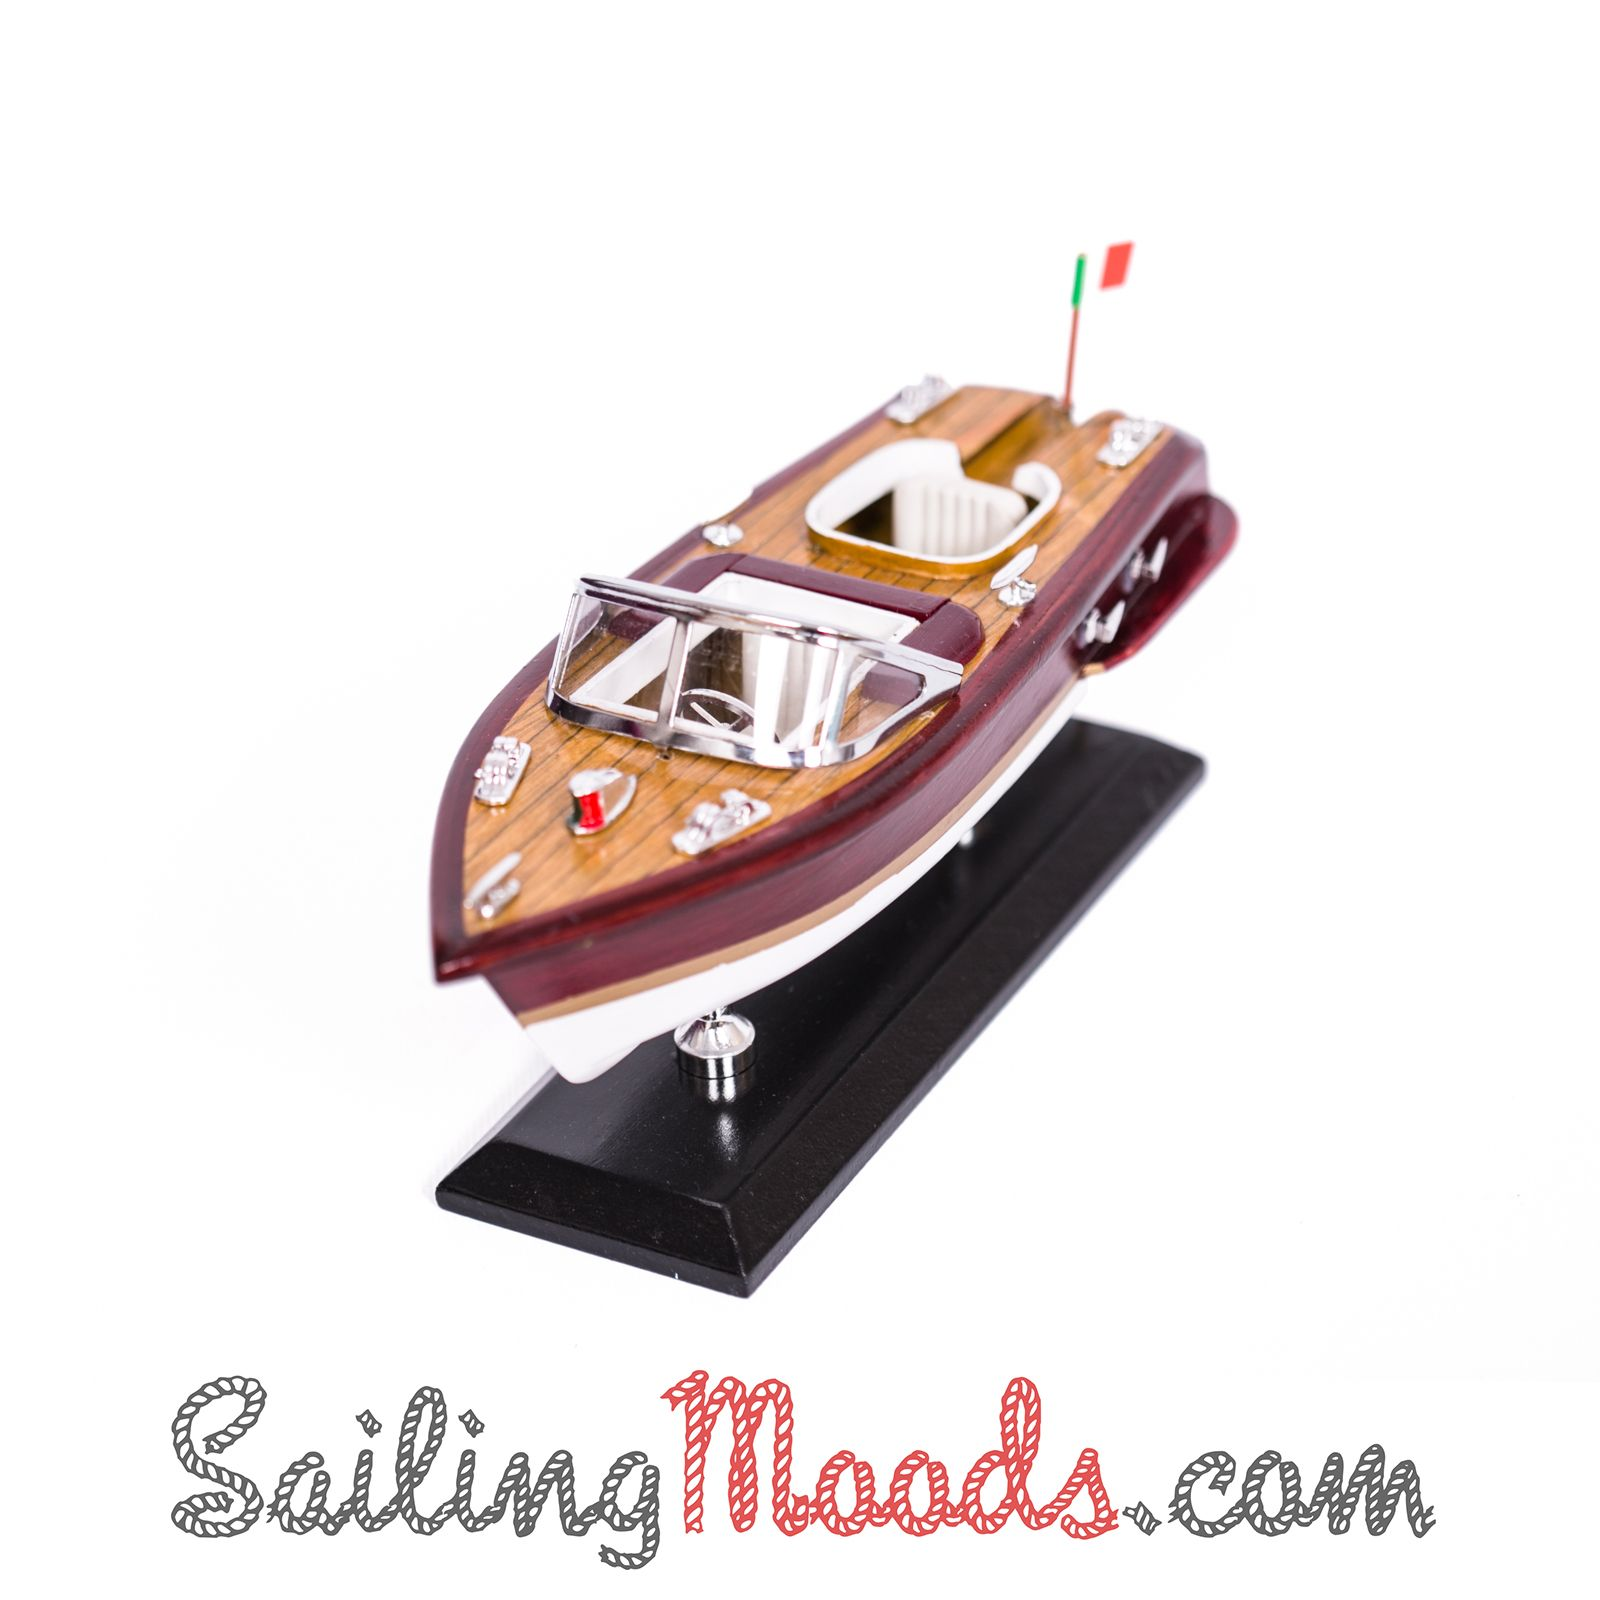 Nautical gifts for the home - Model Speedboat Length 35 Cm Http Sailingmoods Com En Modeldecor Nauticalgifts